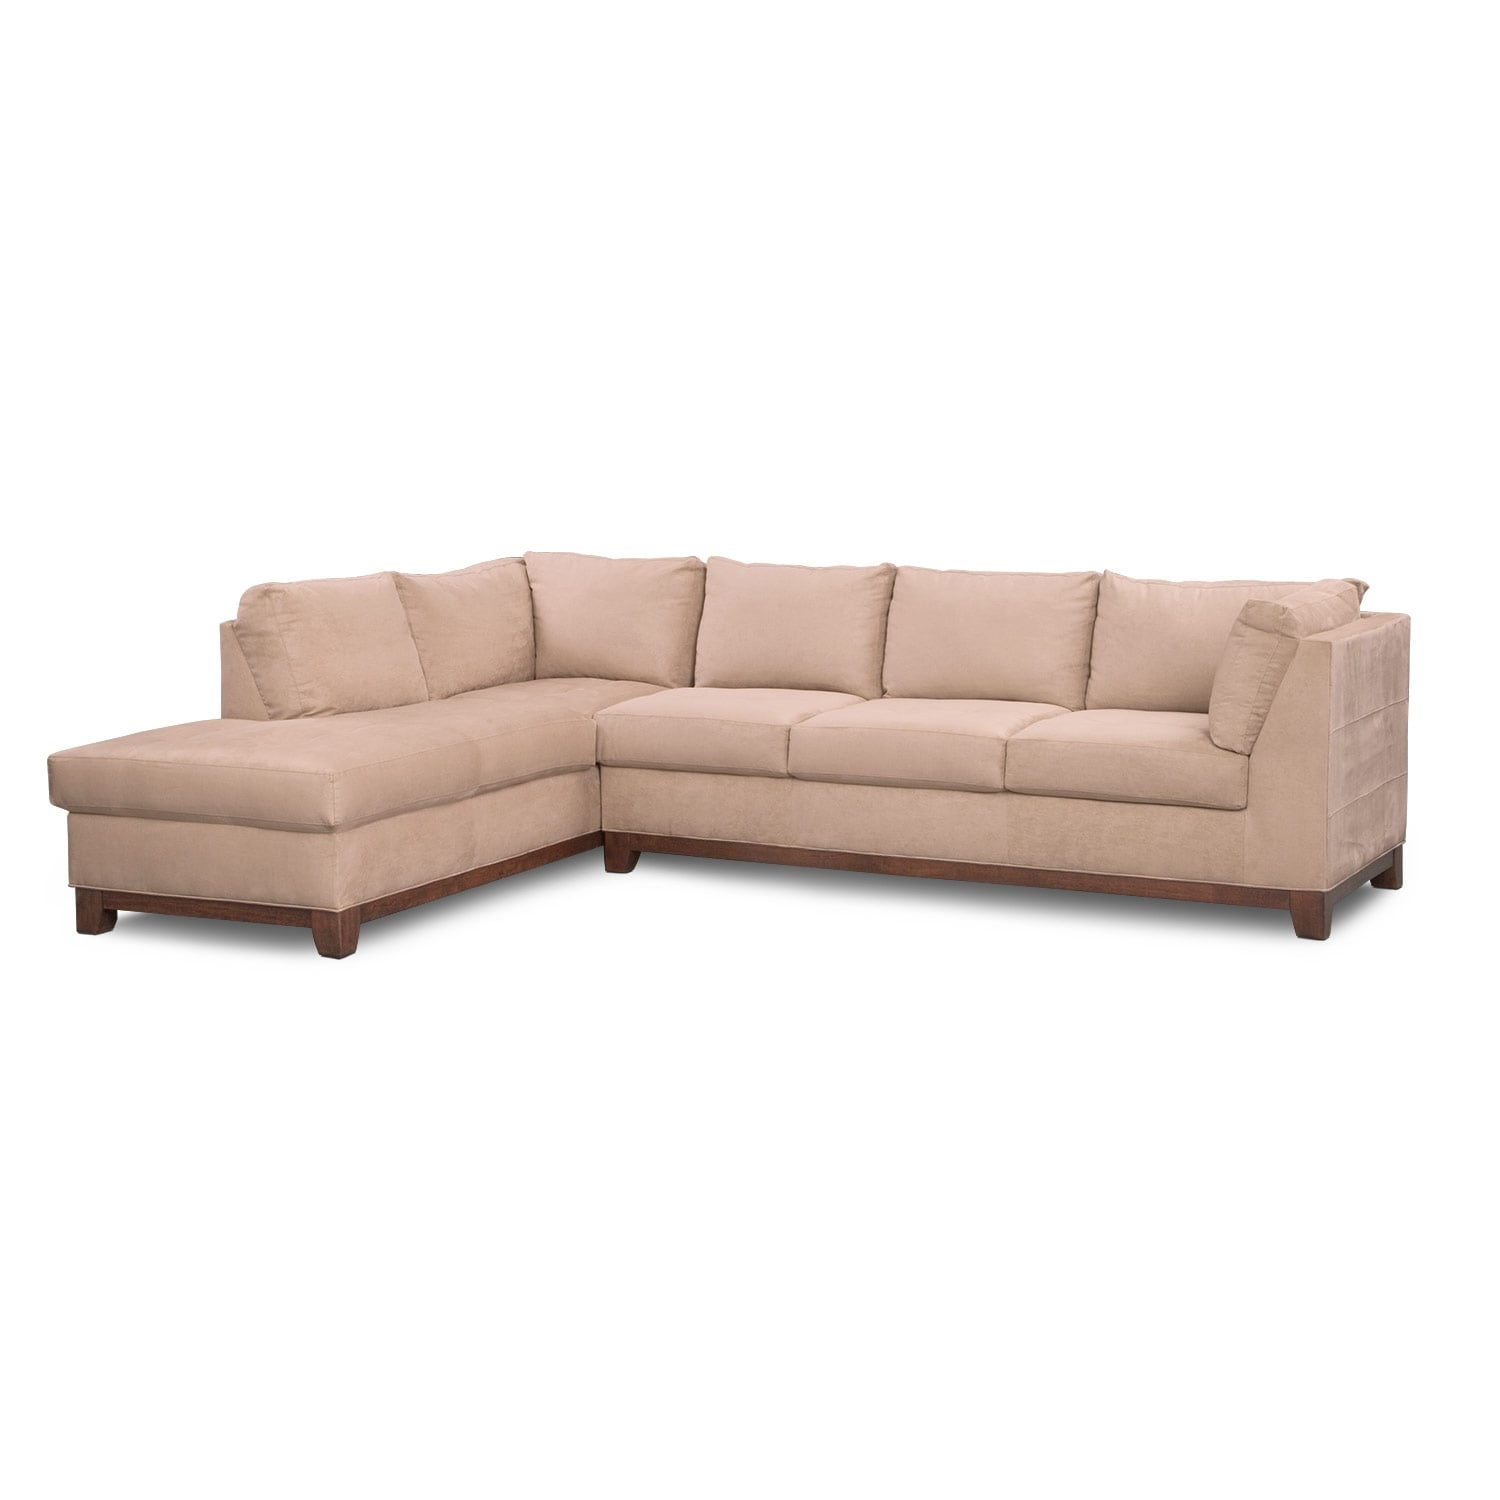 Soho 2 piece sectional with left facing chaise for Sectional furniture